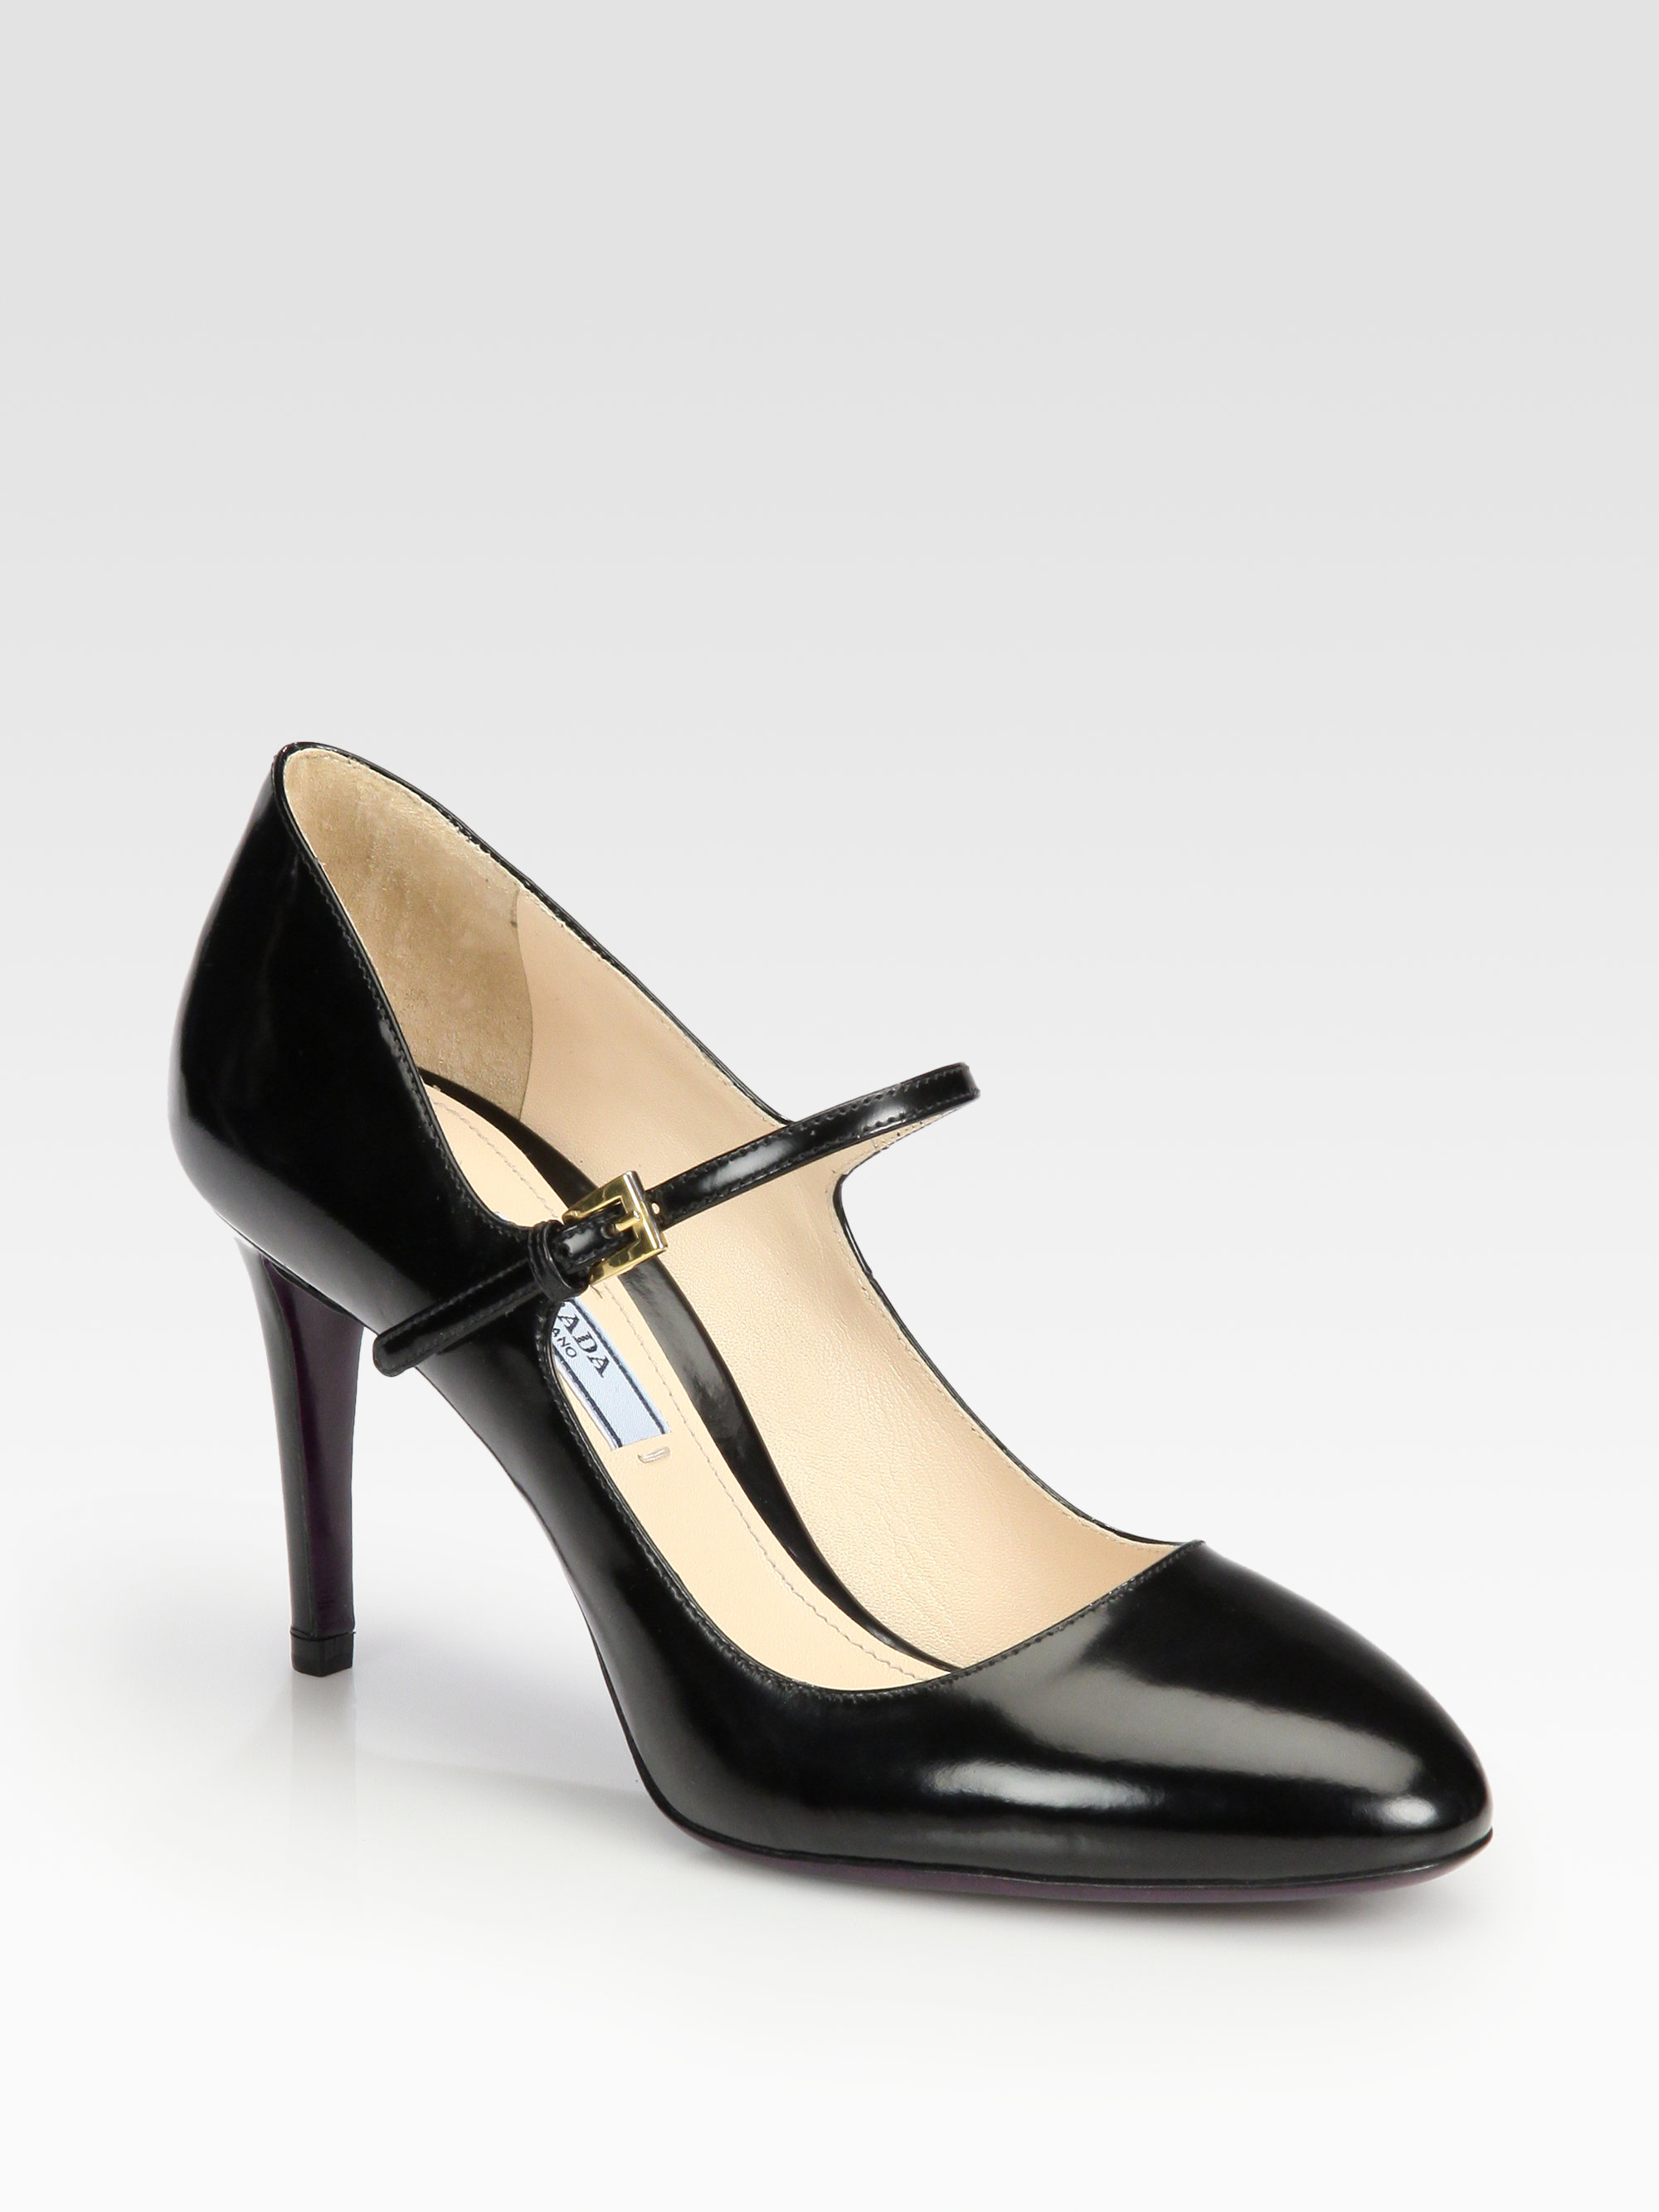 Prada Pompes Mary Jane Broche - Noir zC2mb